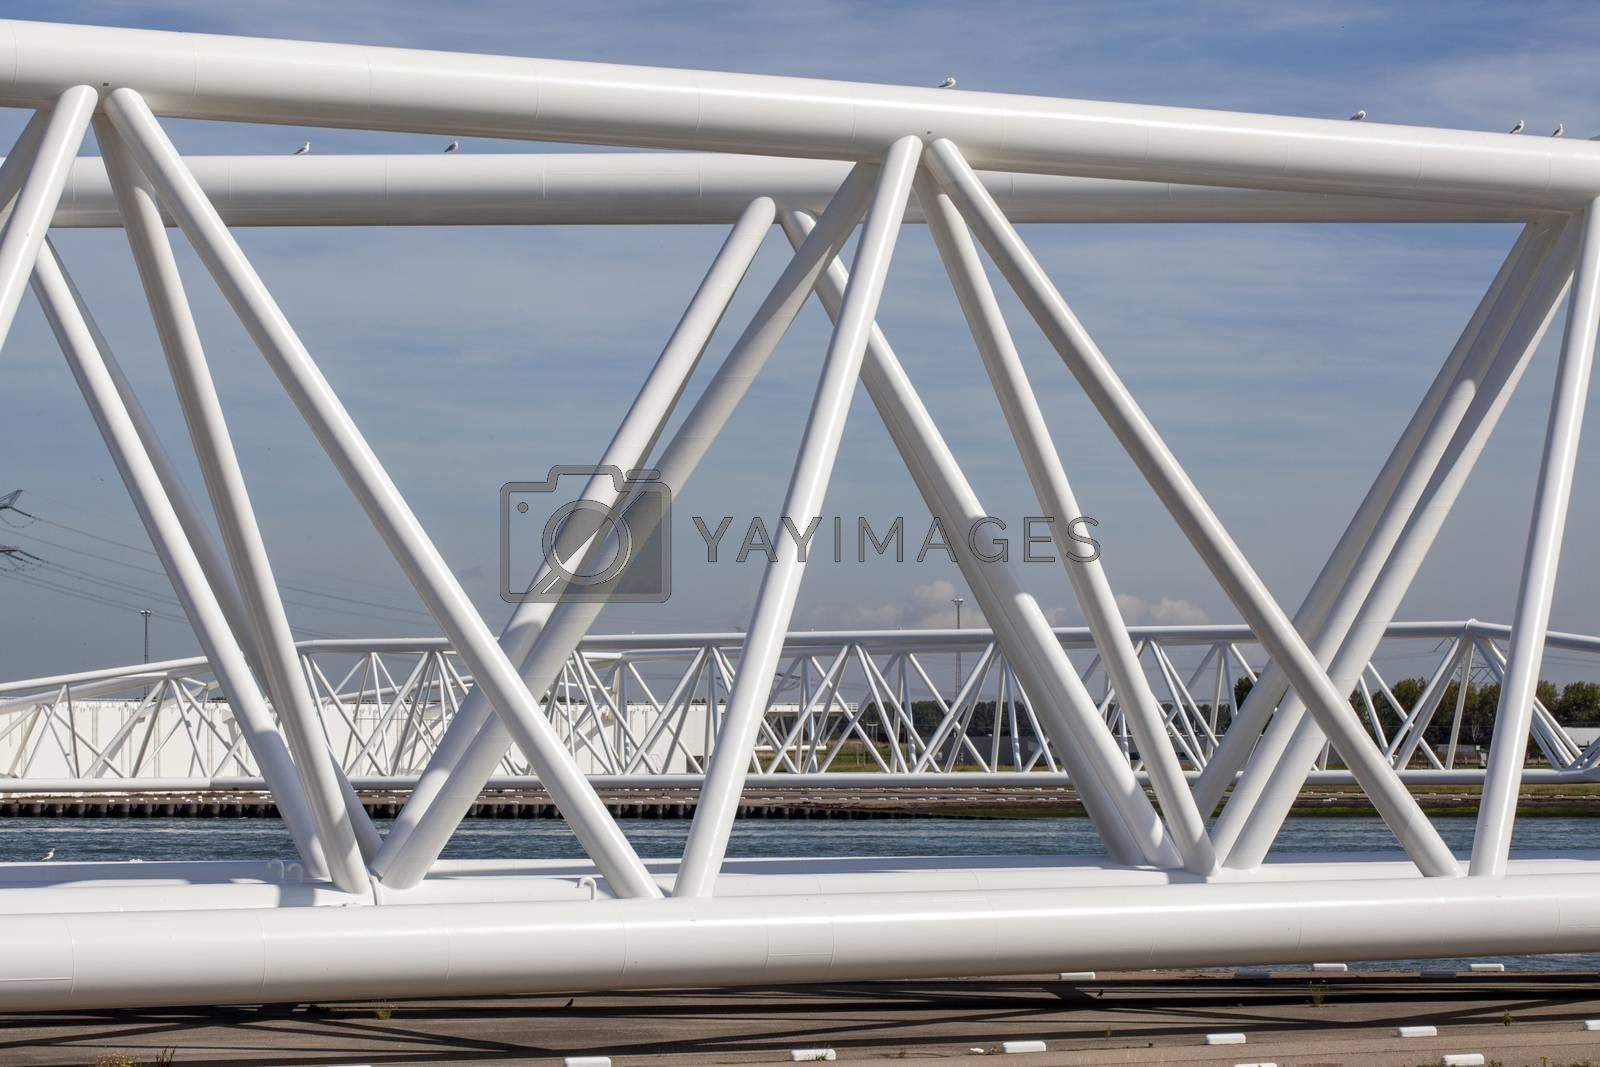 Maeslantkering storm surge barrier on the Nieuwe Waterweg Netherlands it closes if the city of Rotterdam is threatened by floods and is one of largest moving structures on earth